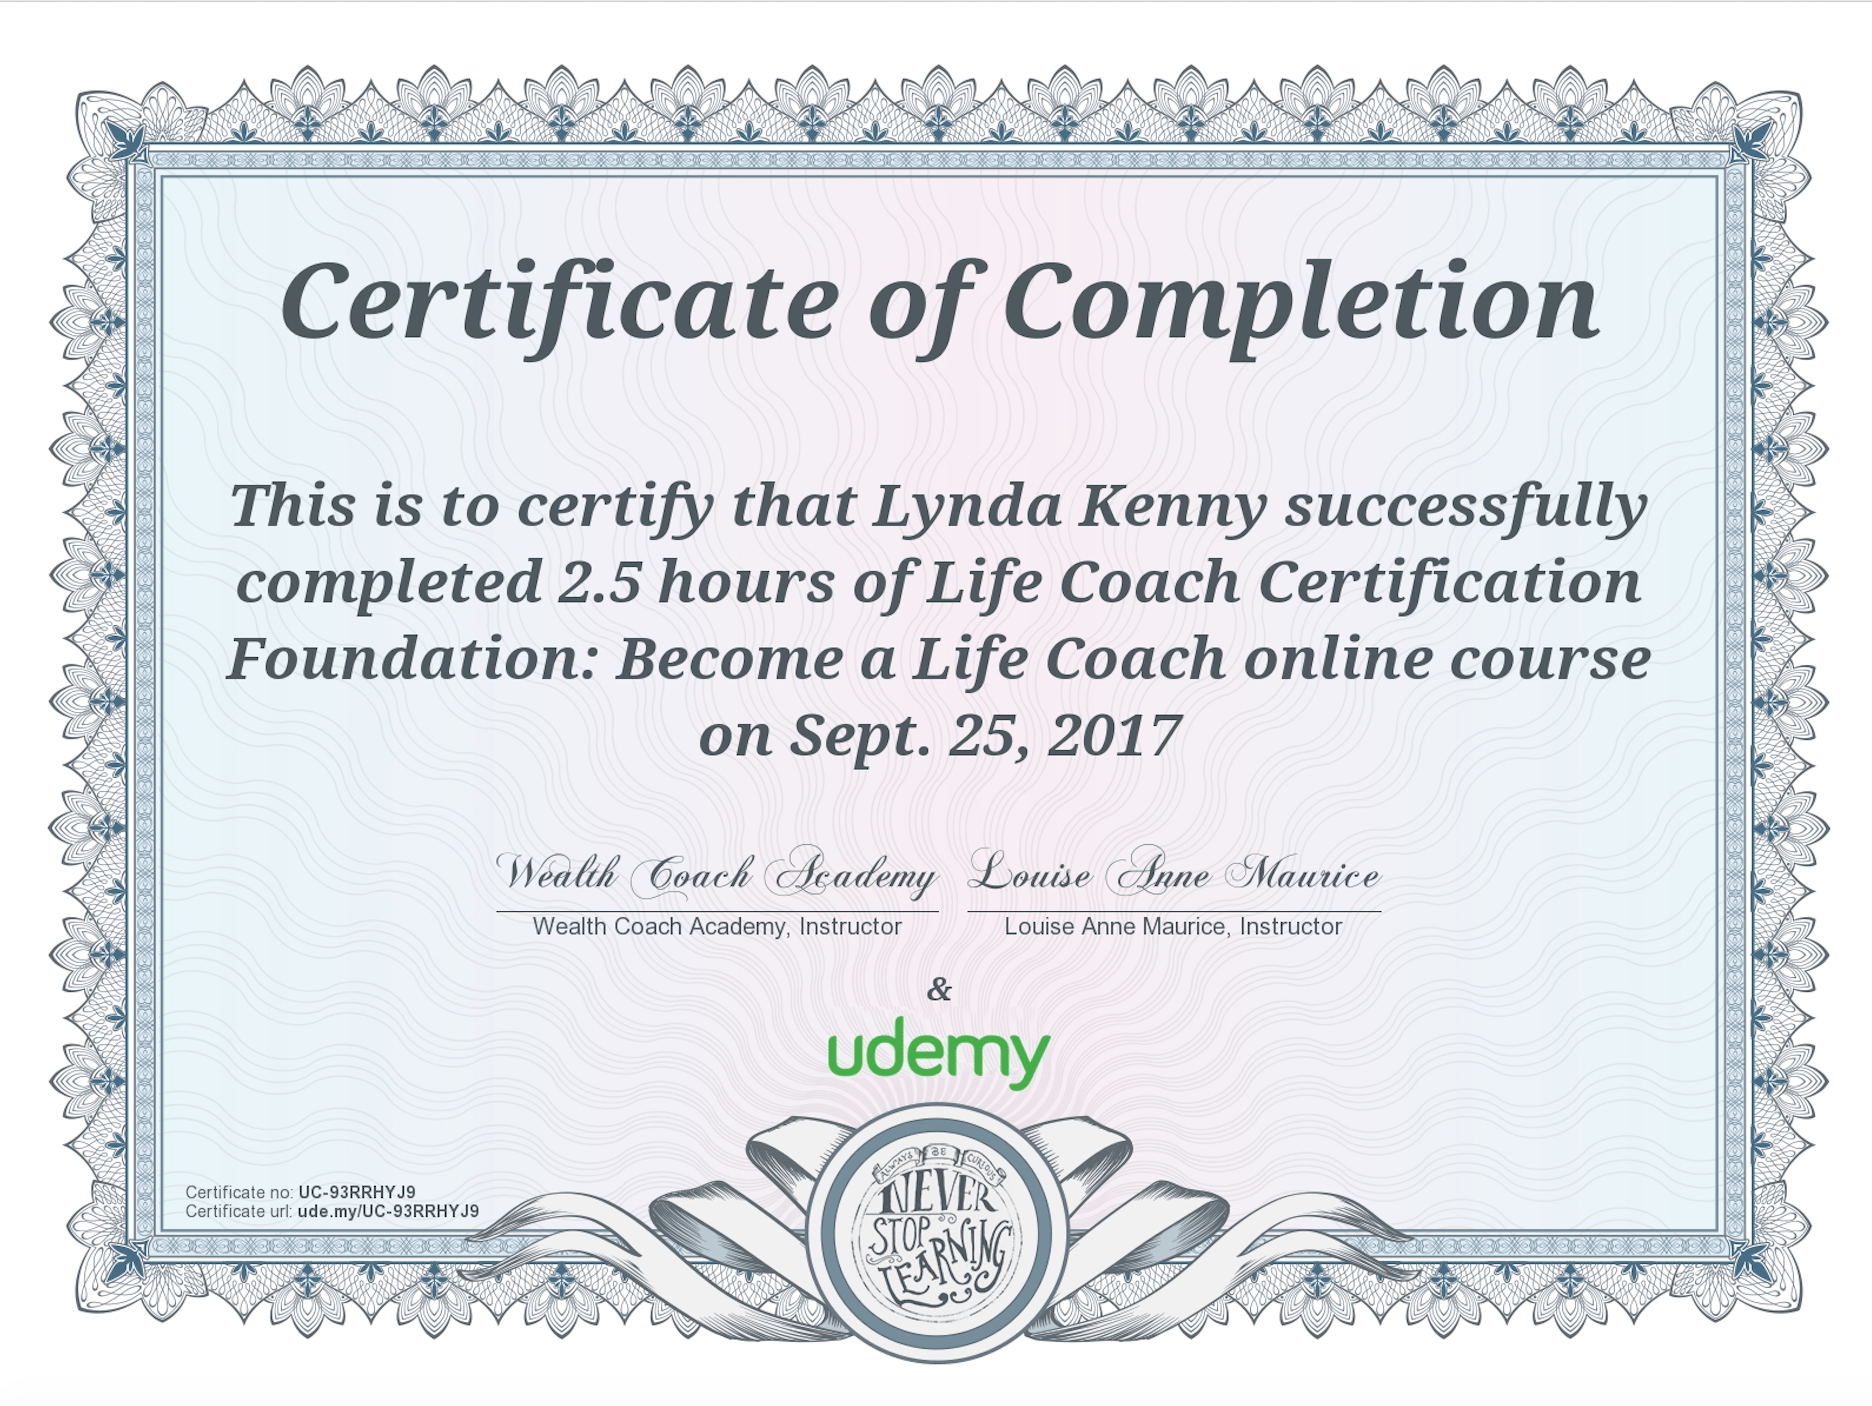 Work with me lynda kenny online this certificate above verifies that lynda kenny successfully completed the course success coach certificate complete coaching system as taught by womanly xflitez Images